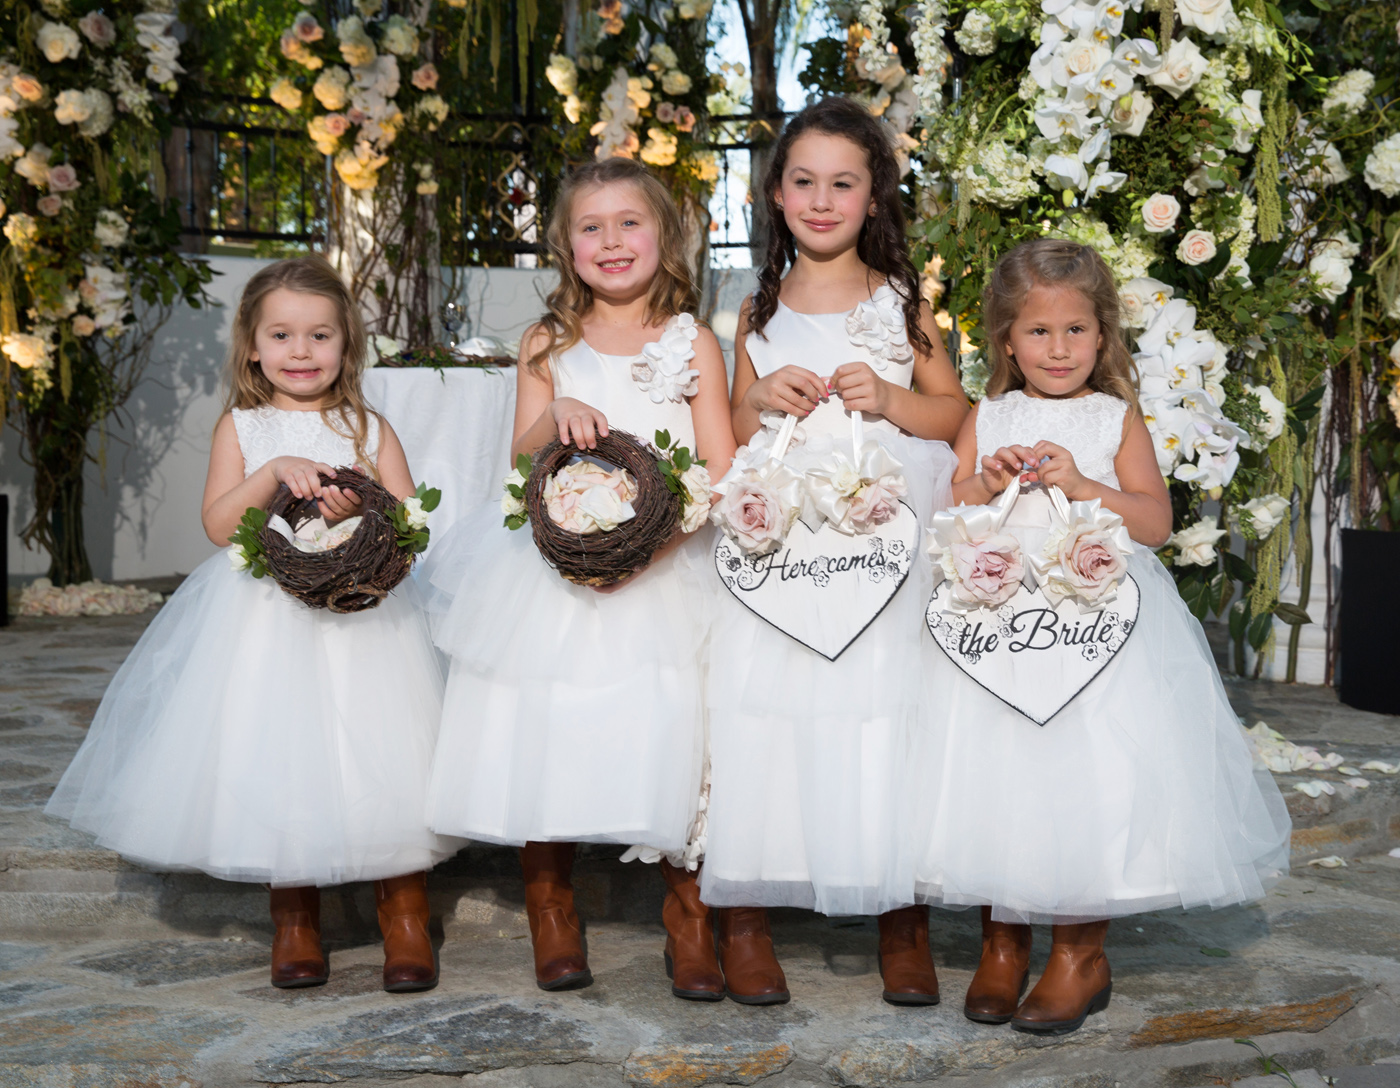 Kids In Weddings How To Honor Your Children In The Ceremony